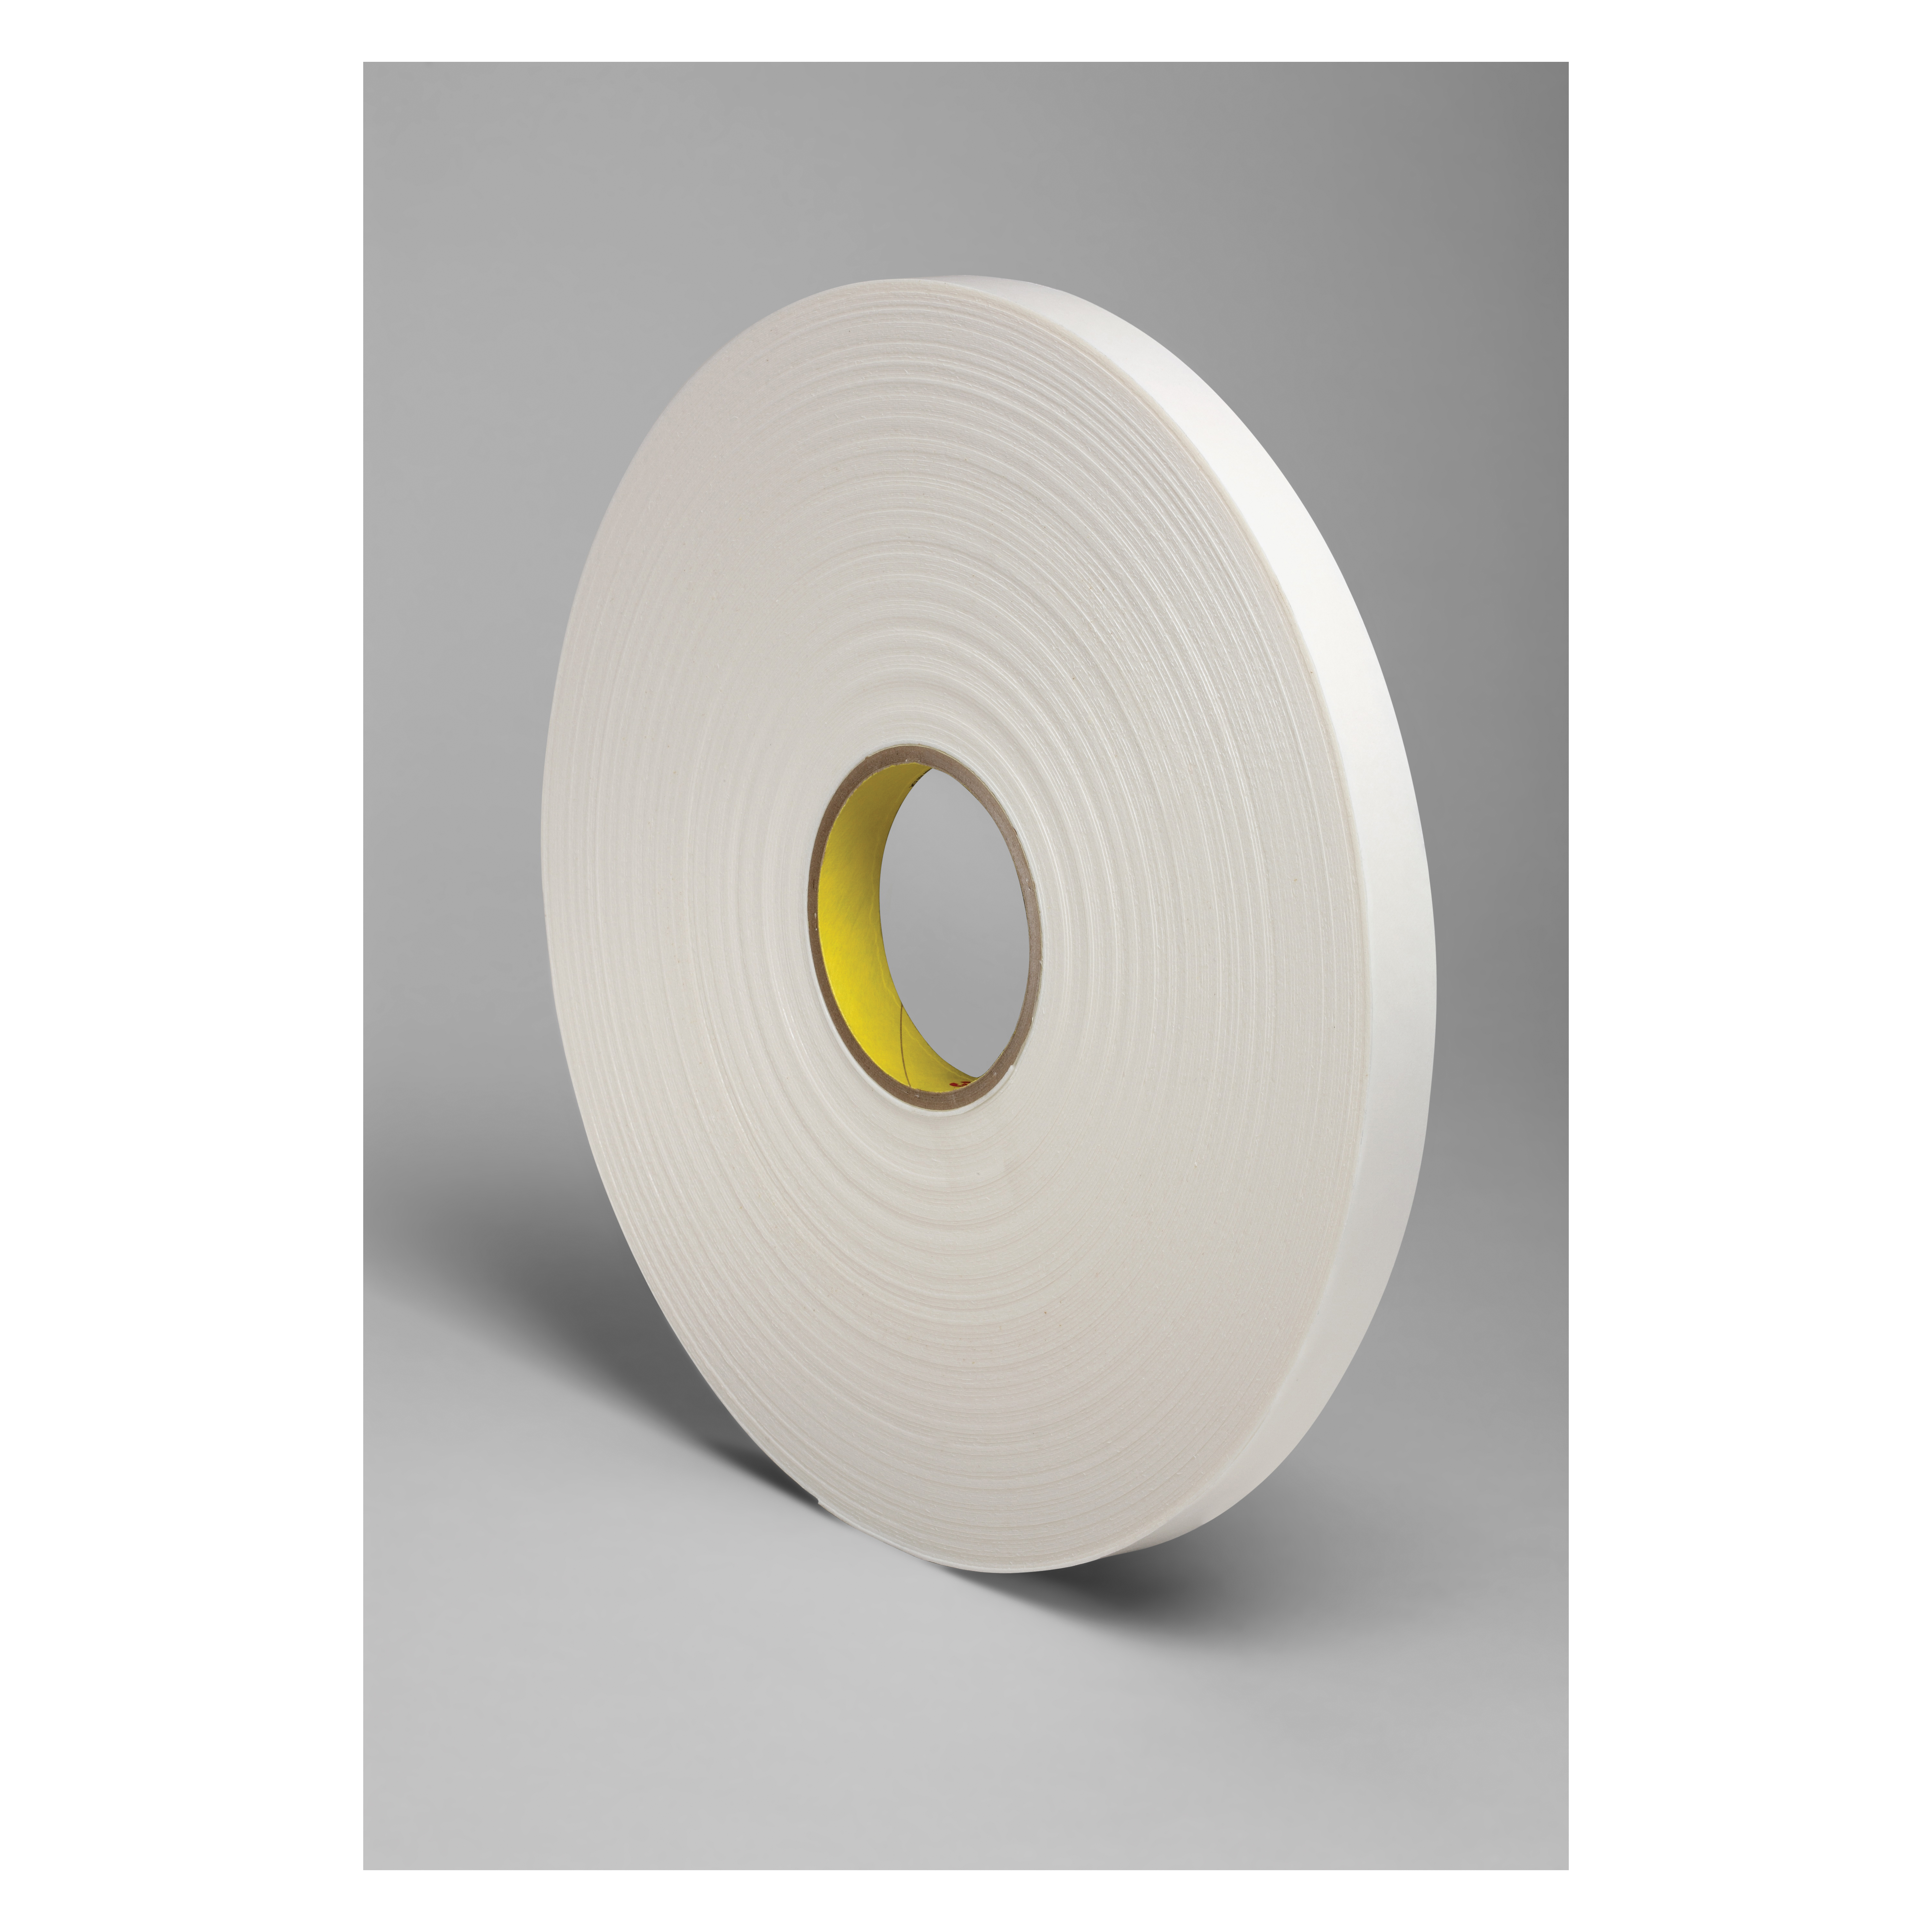 3M™ 021200-03413 Single Coated Foam Tape, 18 yd L x 3/4 in W, 250 mil THK, Acrylic Adhesive, Urethane Foam Backing, Natural